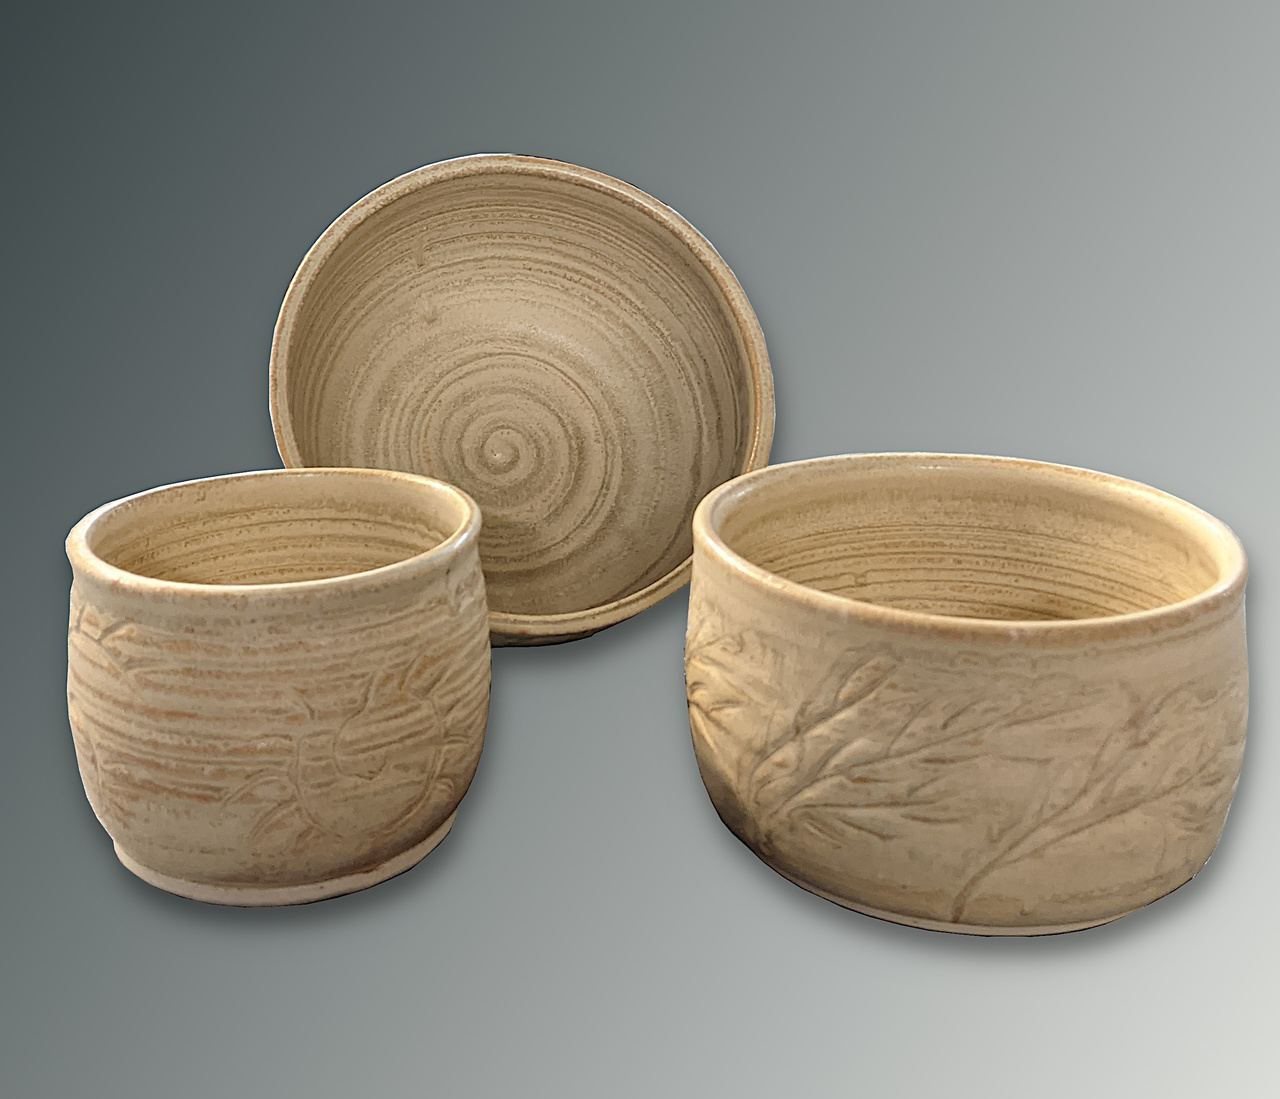 Three Piece Nesting Bowls by Laura Clemons